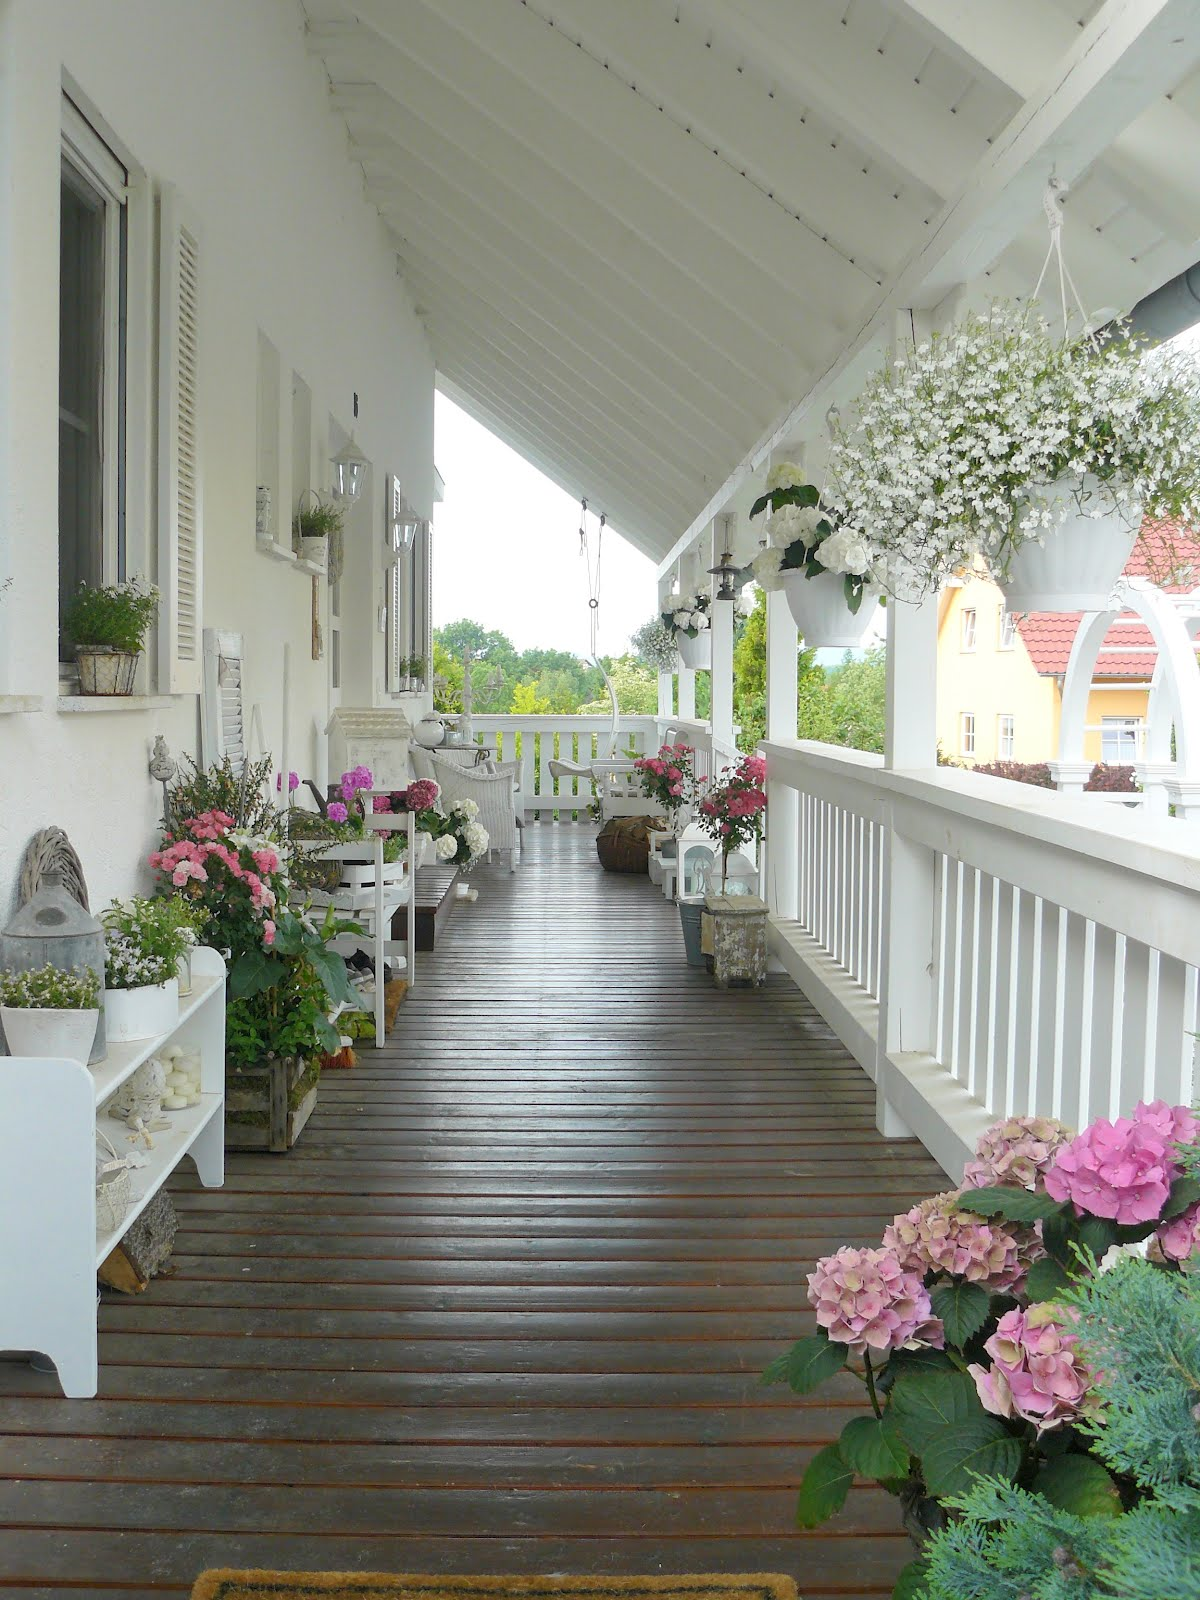 Outdoor Living Ideas - Shabby Chic Front Porch